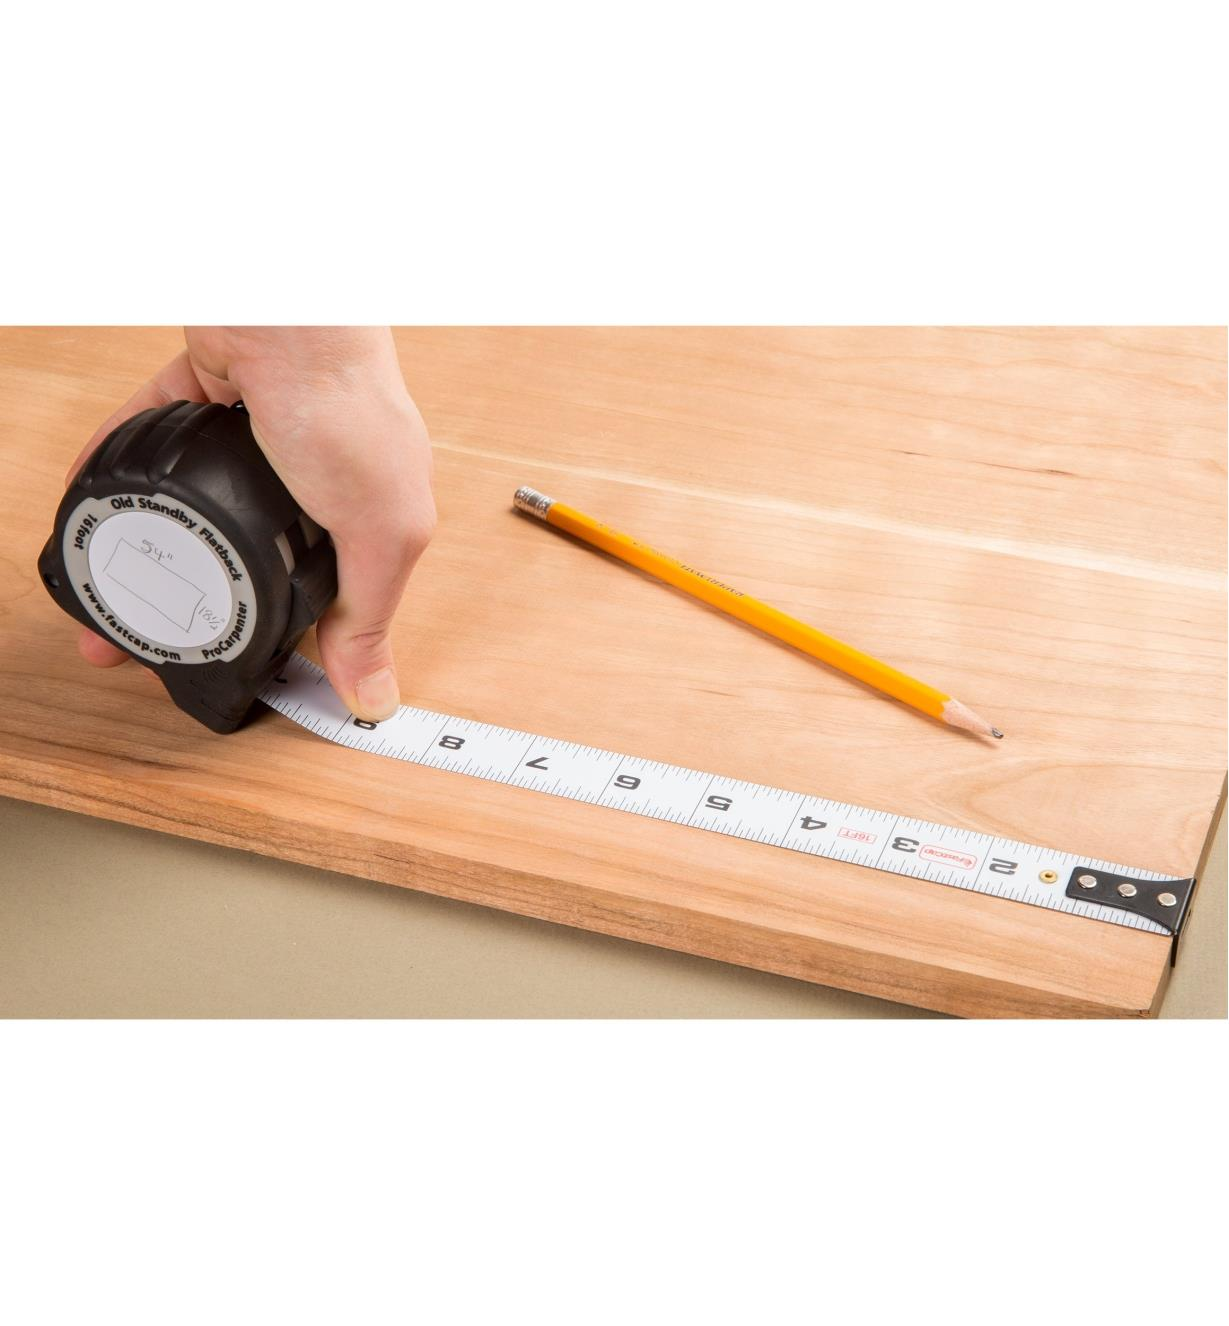 Measuring the width of a board